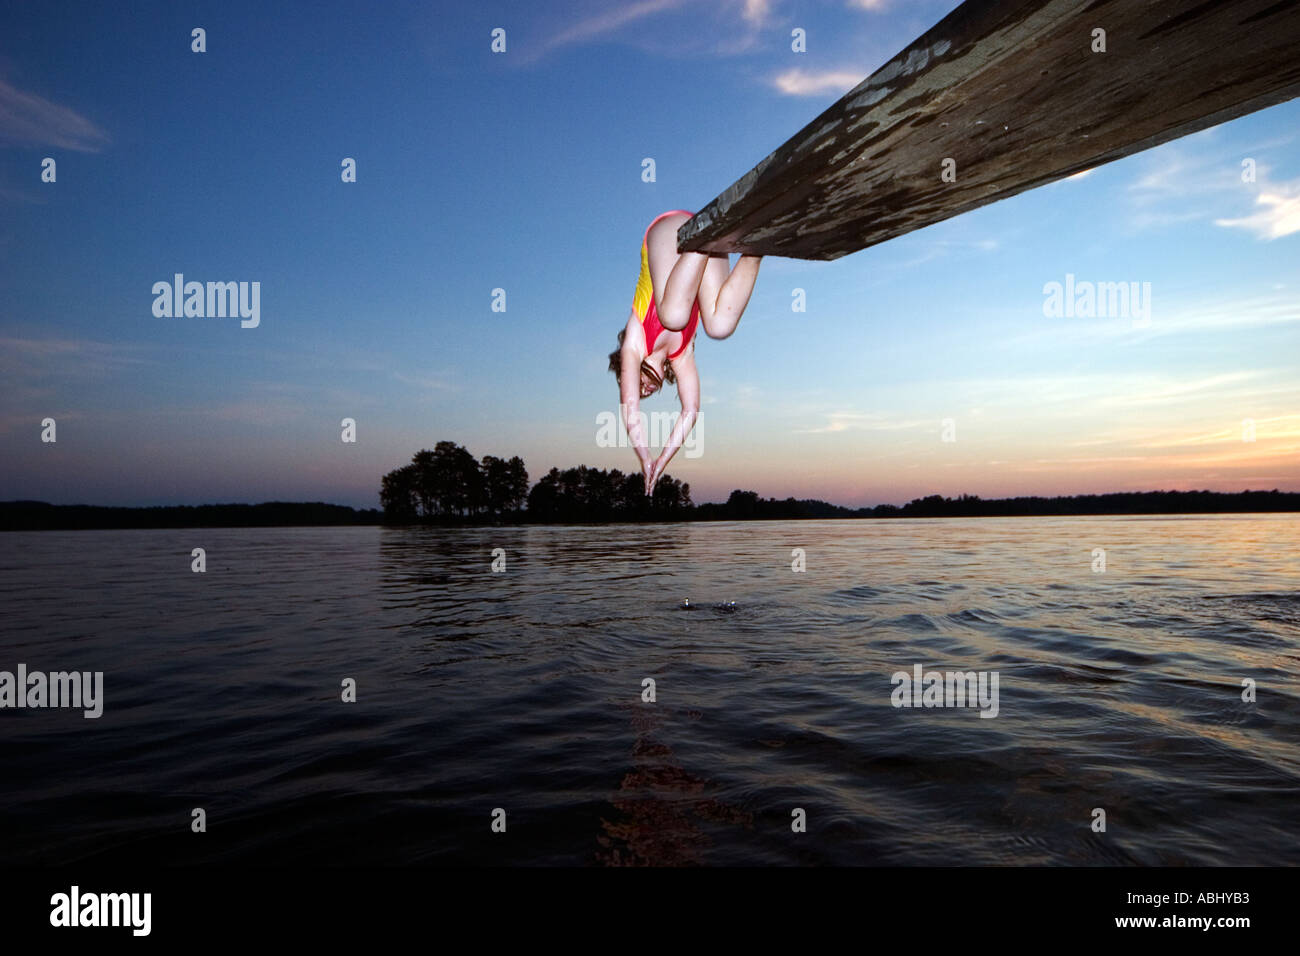 girl diving into the water - Stock Image